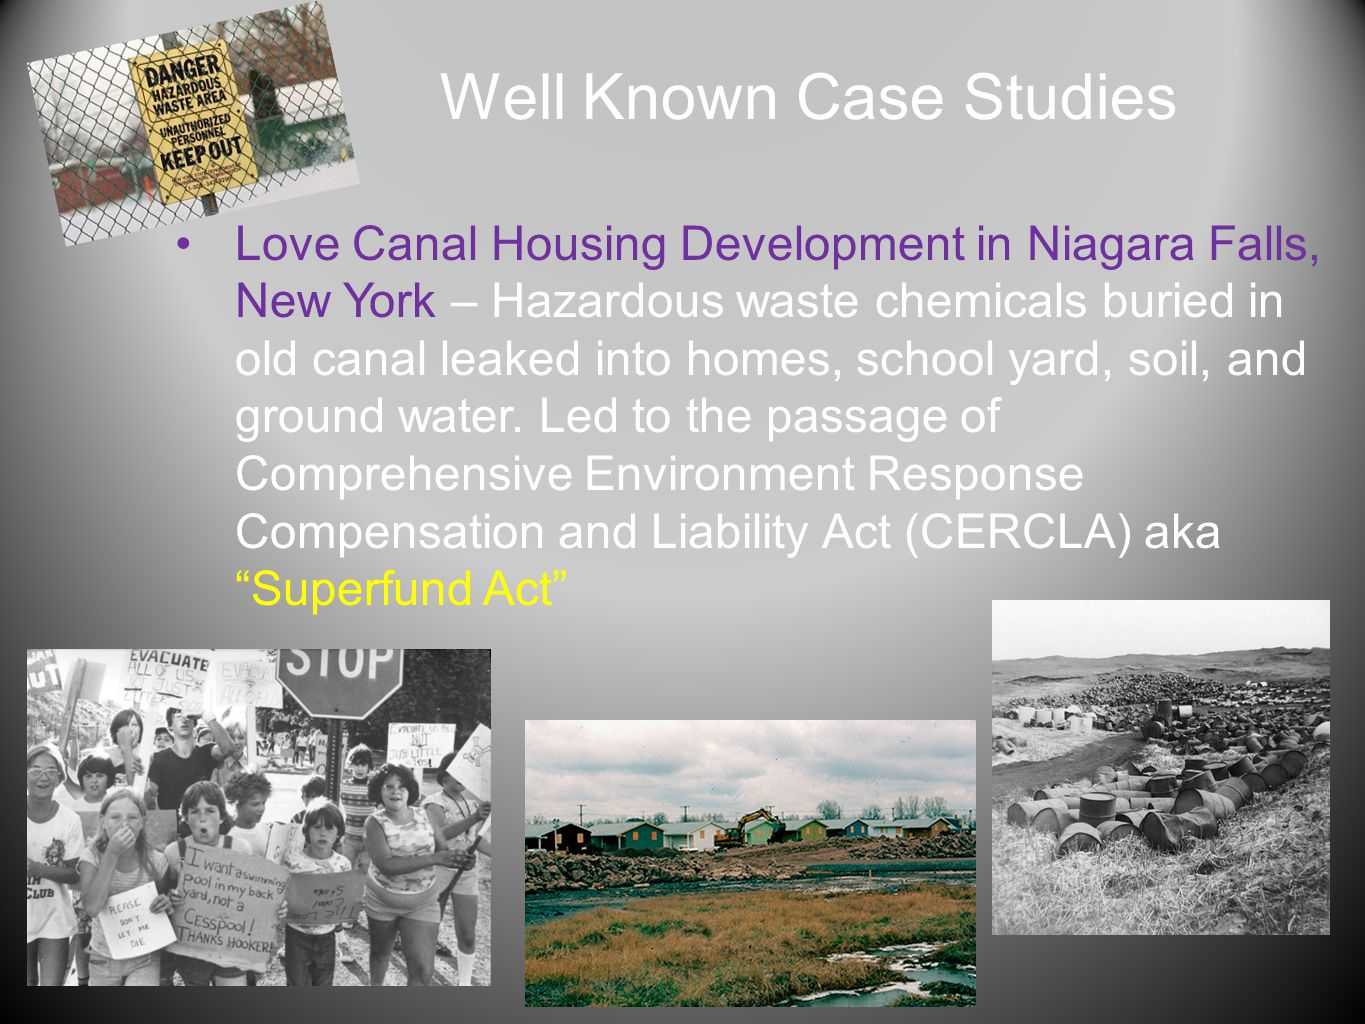 Well Known Case Studies